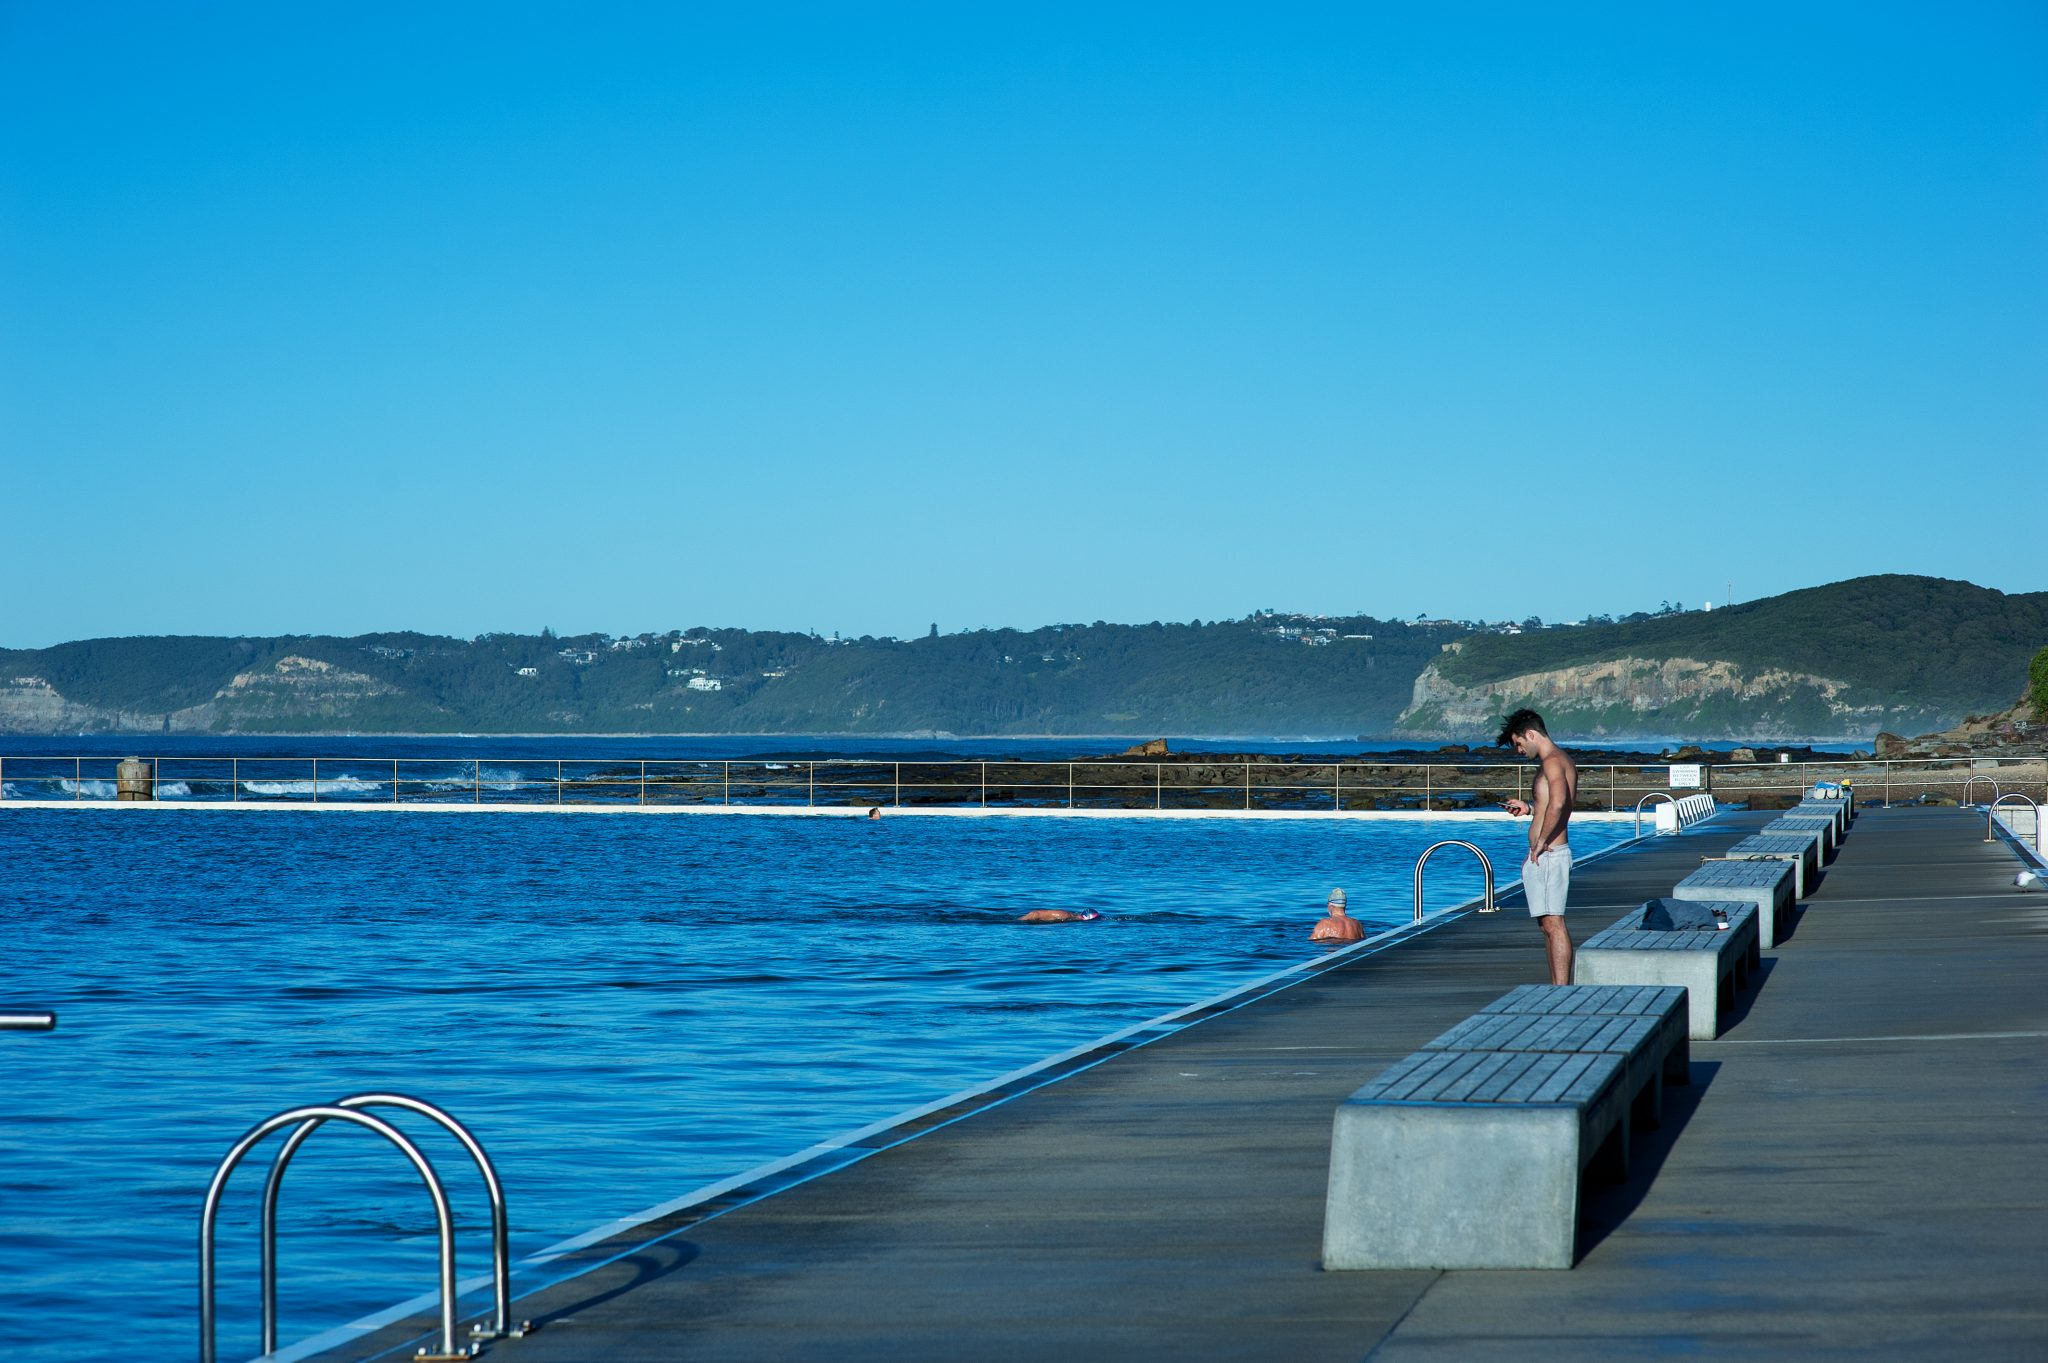 Photo of Merewether baths taken by Newcastle photographer